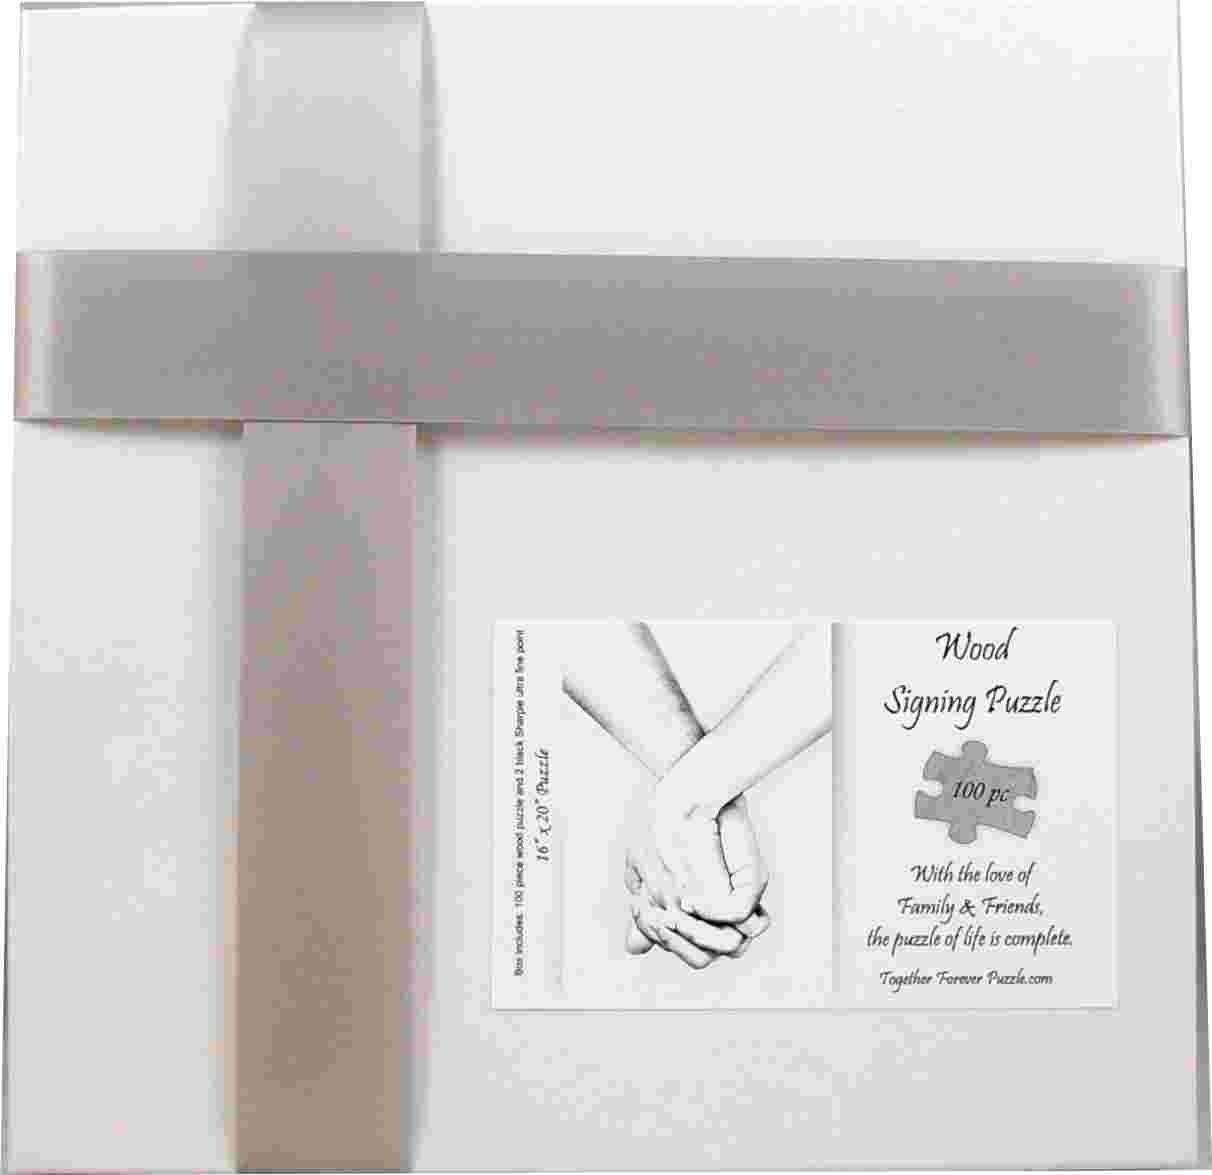 """Hand in Hand"" Alternative Wedding Guest Book Forever Tree Wood Box Puzzle 151 Piece 19 x 32.5 by Together Forever Puzzle (Image #2)"